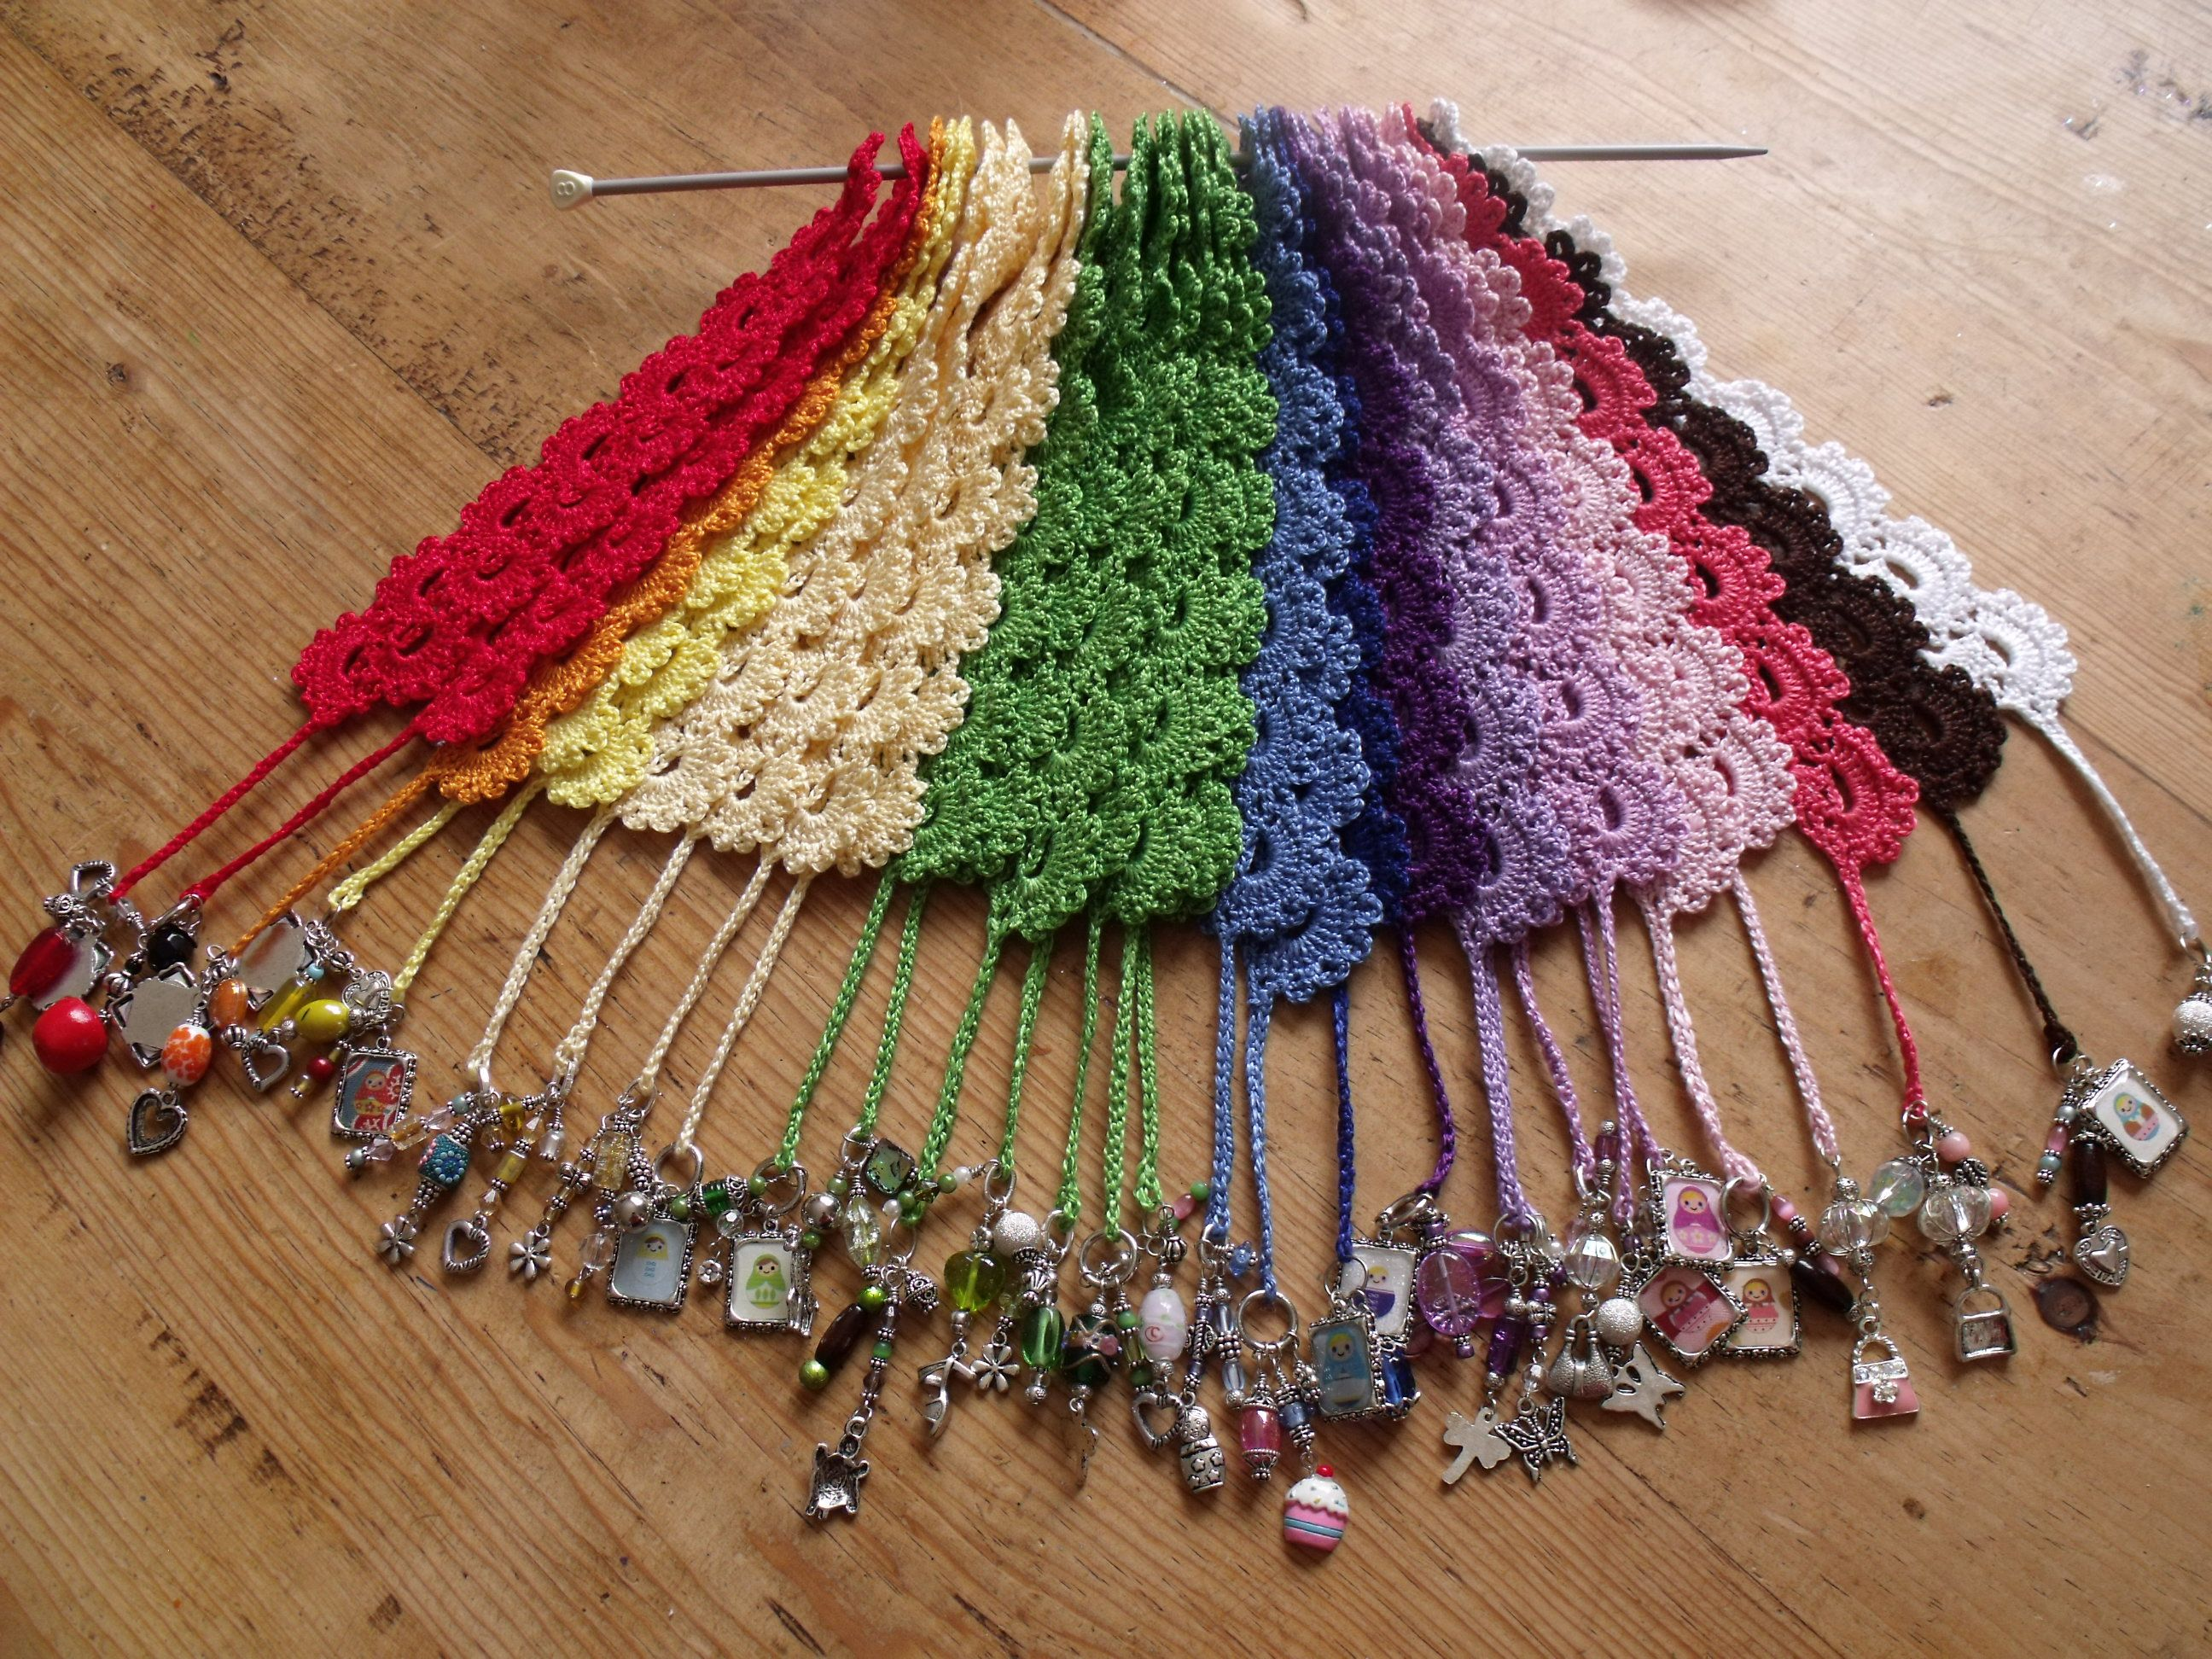 How to tie a crochet - an instruction for lovers of original things